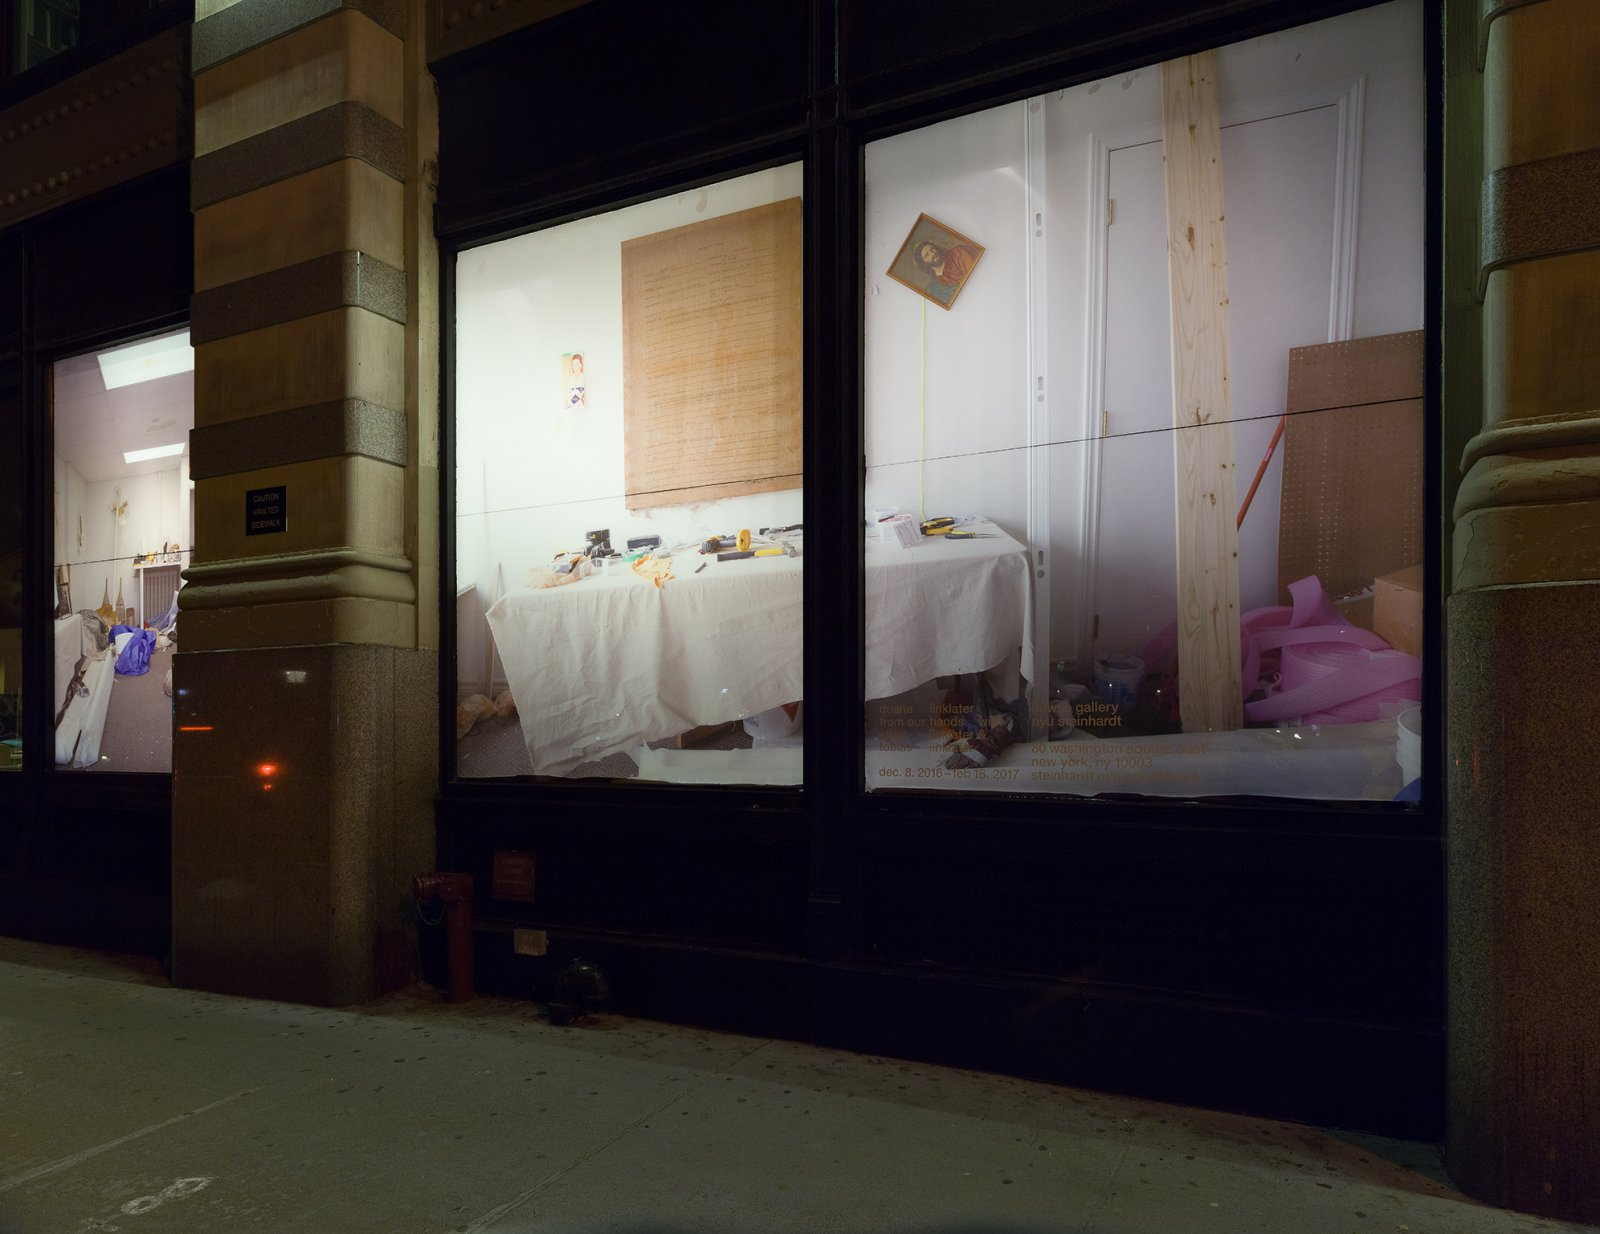 Duane Linklater, Untitled Studio View (Main Street, North Bay), 2016, digital print on vinyl, dimensions variable. Installation view, From Our Hands, Washington Square Windows, 80WSE Gallery, New York, 2016 by Duane Linklater